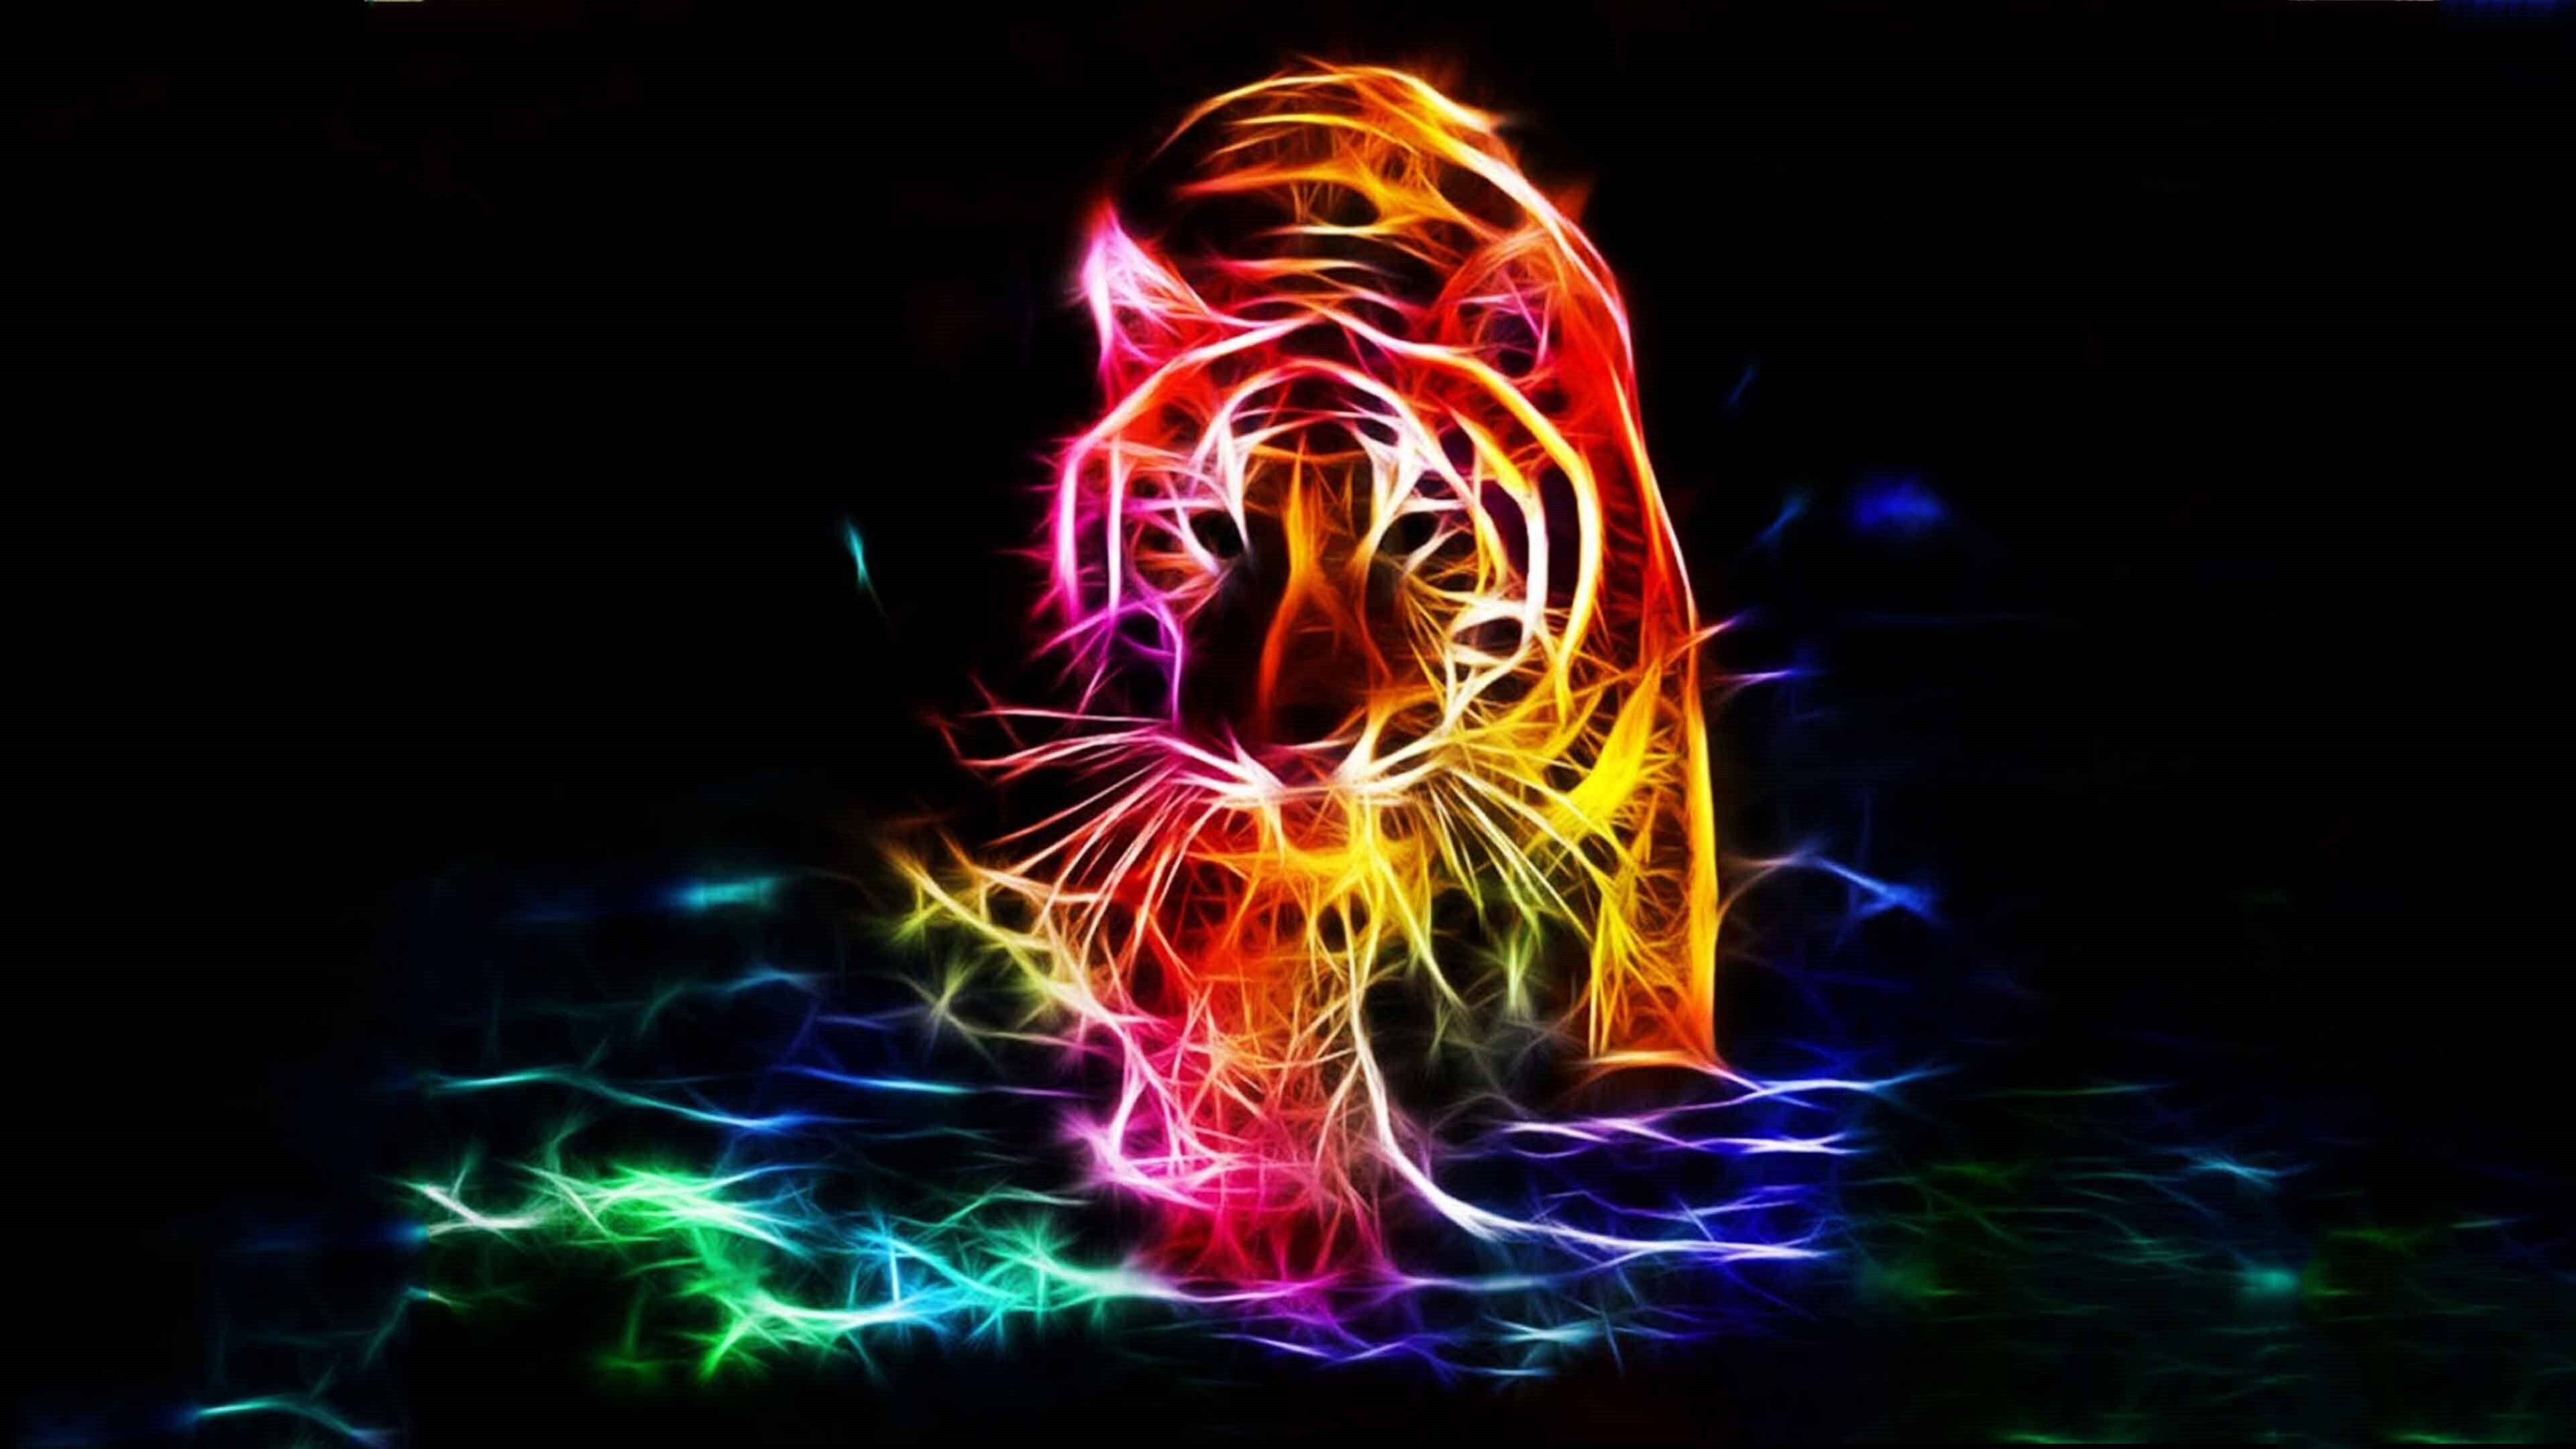 3D Walking Tiger Color 4K Background Wallpapers | HD ...